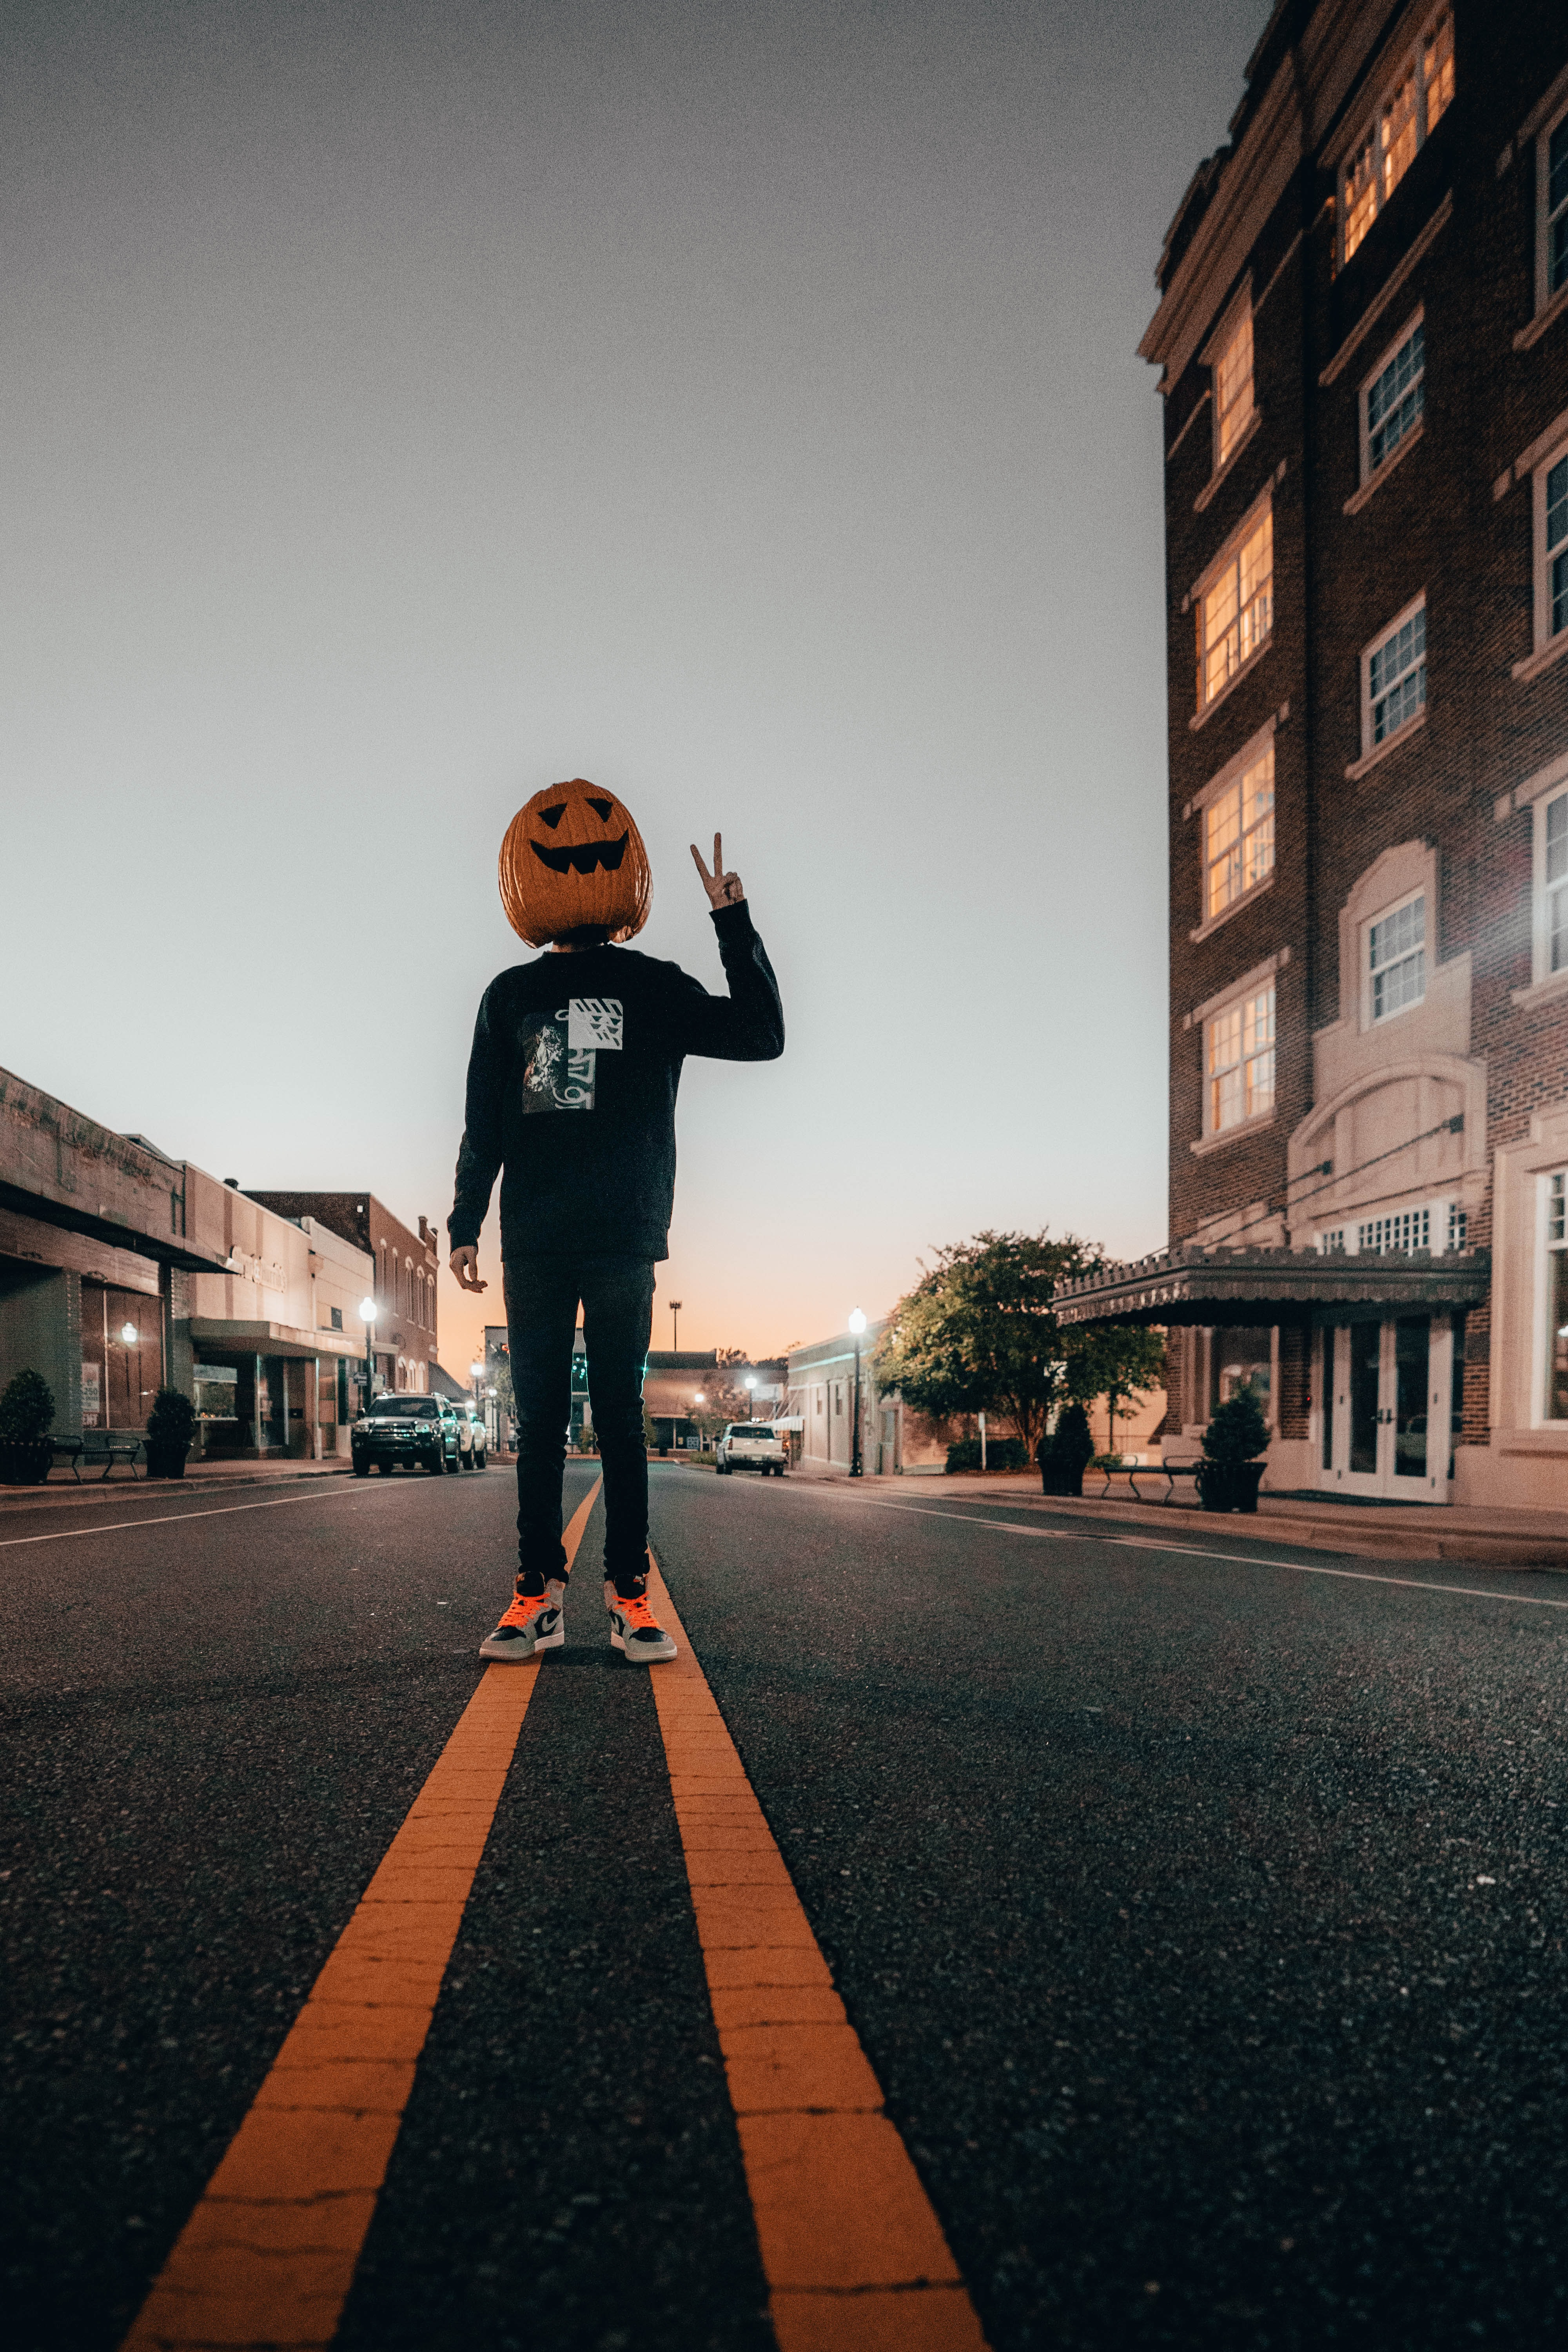 143441 download wallpaper Halloween, Miscellanea, Miscellaneous, Road, Markup, Human, Person, Gesture screensavers and pictures for free